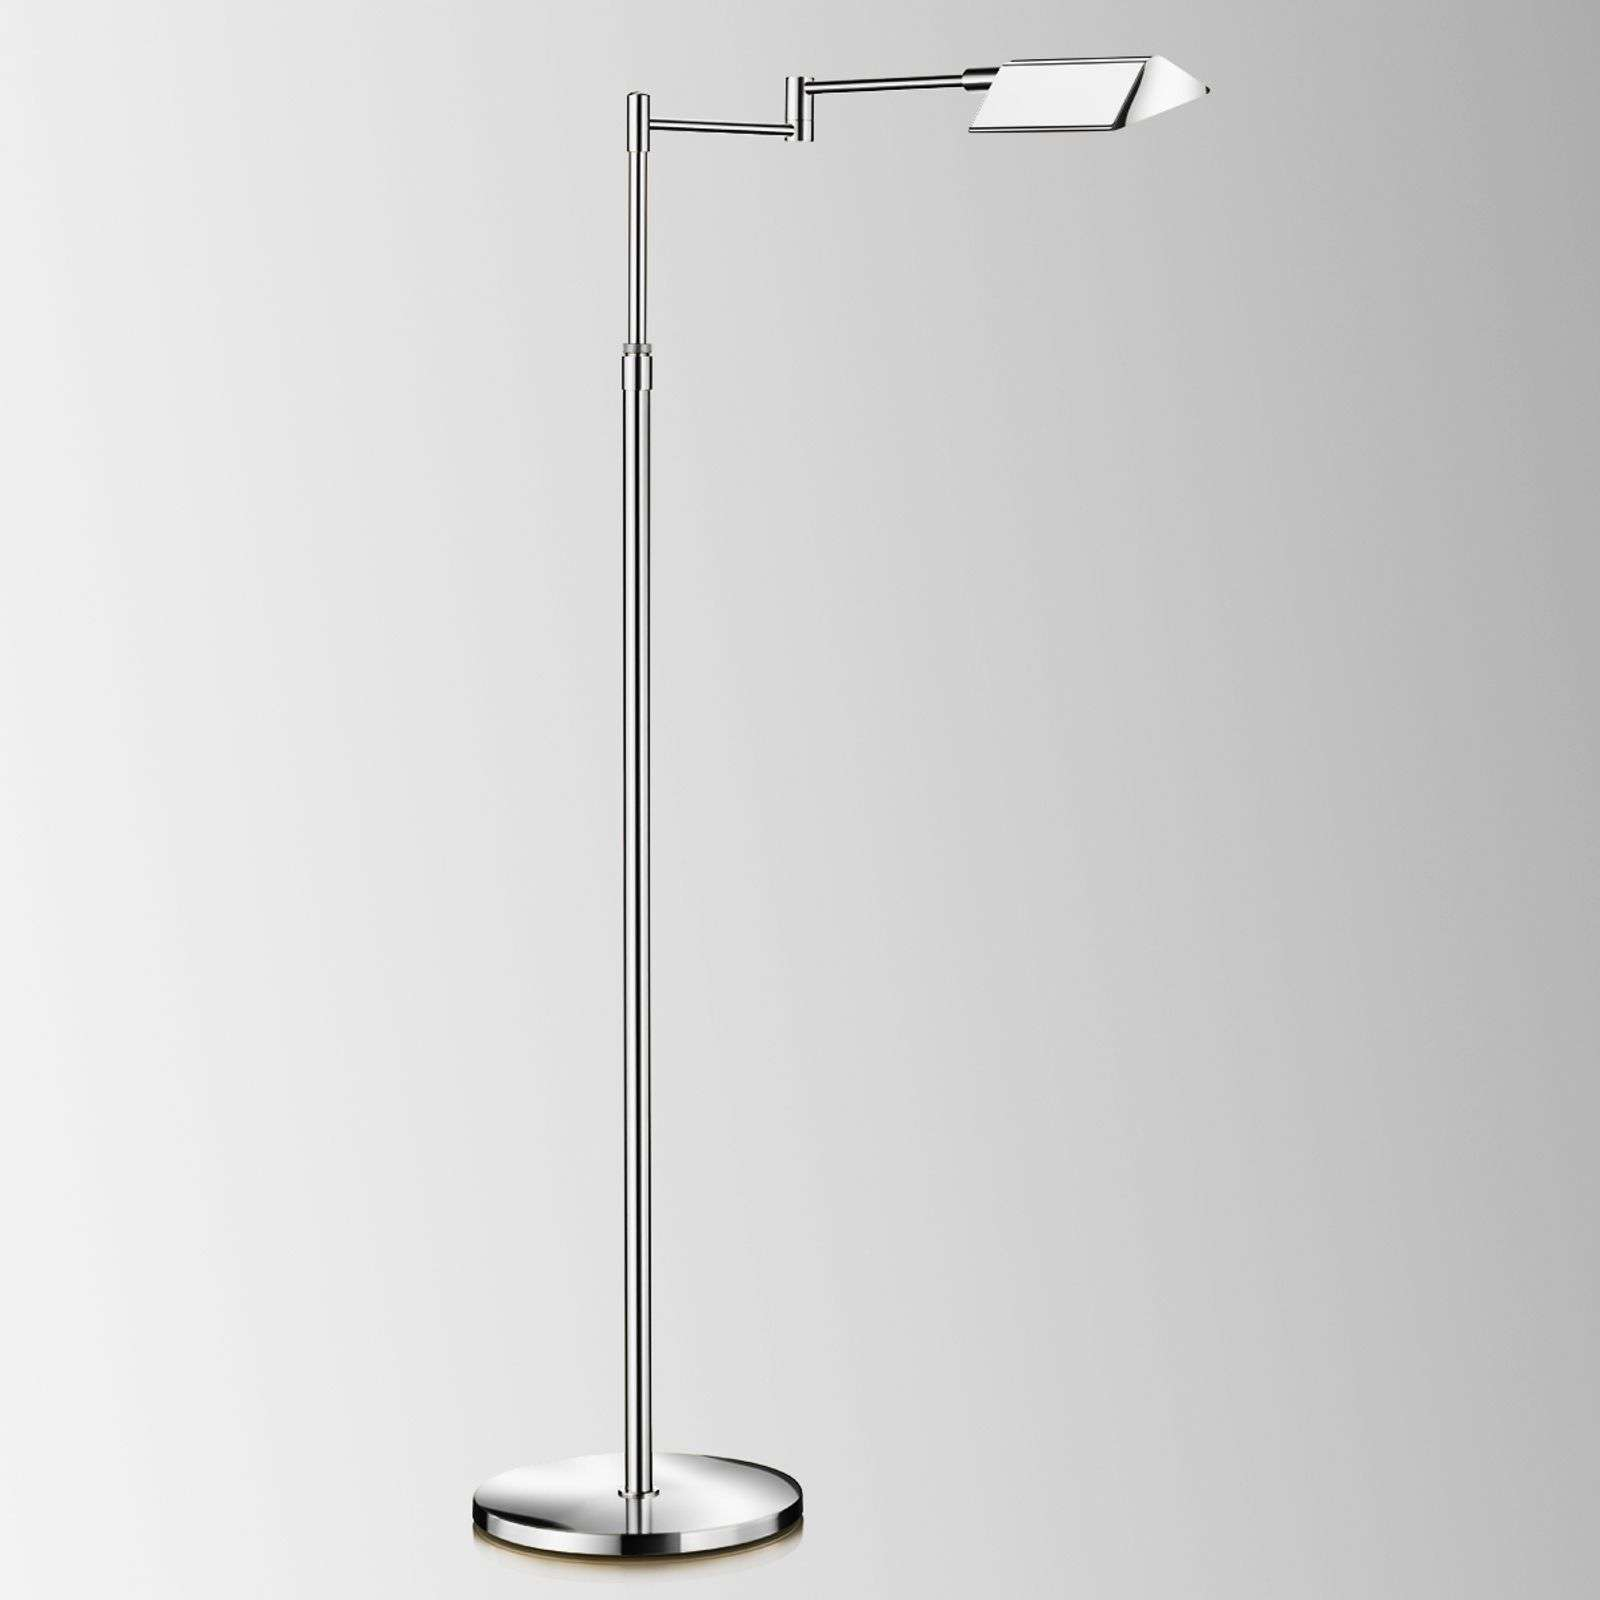 Lampadaire LED Dream chromé, variateur d'intensité